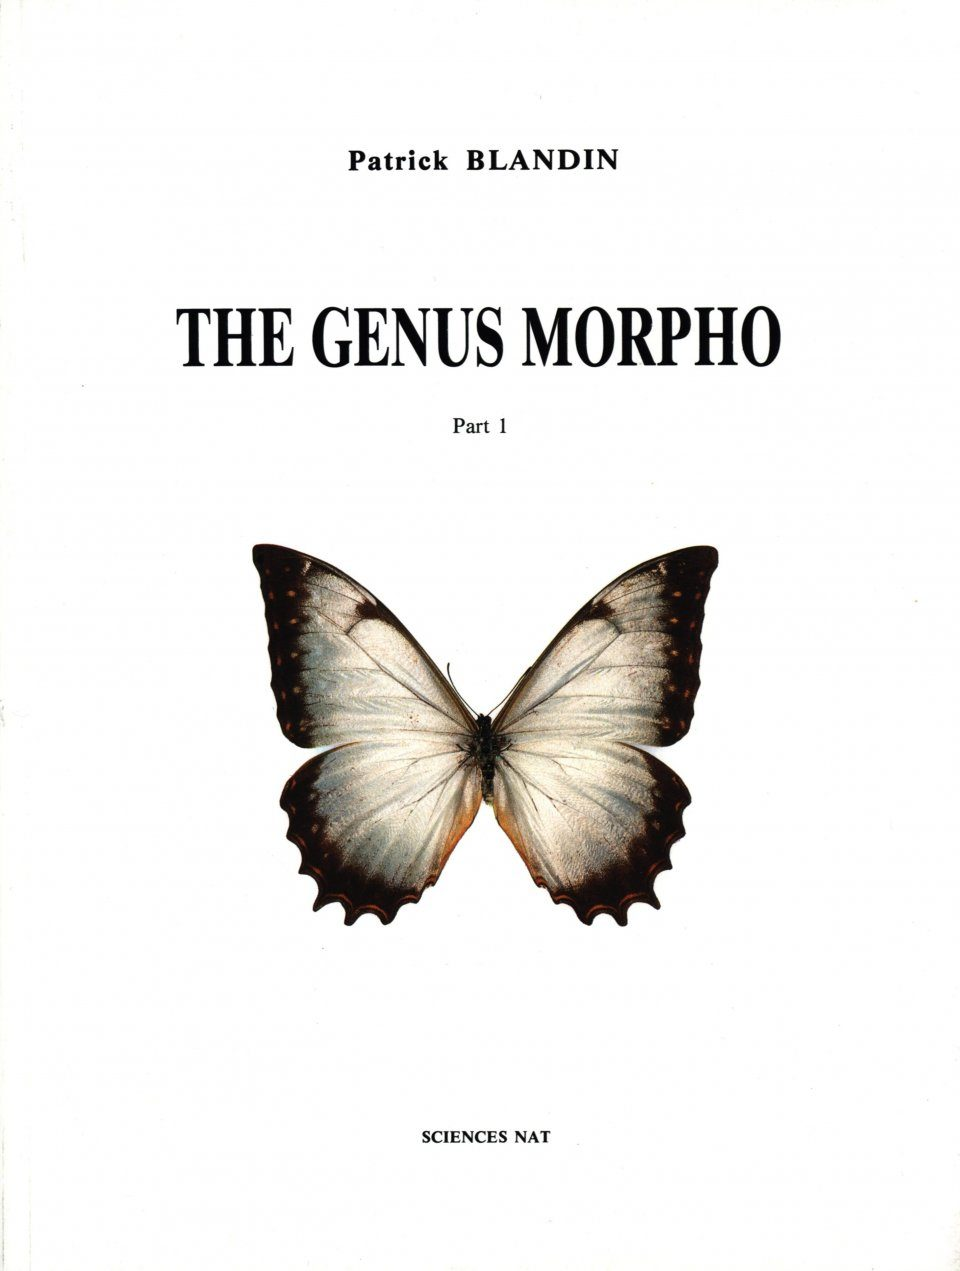 Neotropical Butterflies, Volume 1: The Genus Morpho, Part 1